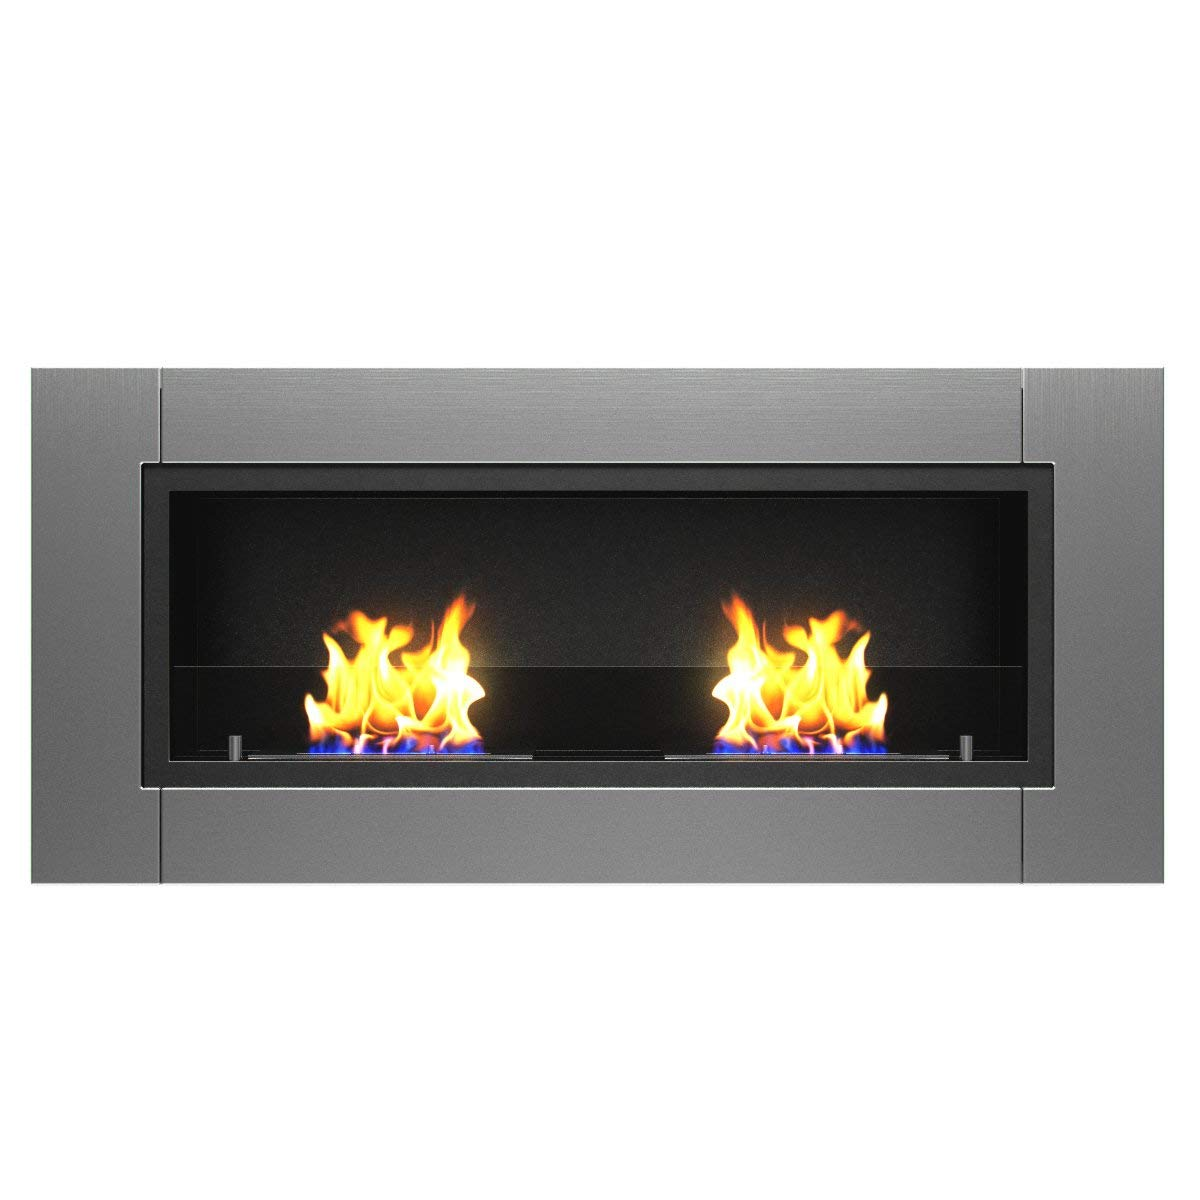 Regal Flame Valencia PRO Wall Mounted Ethanol Fireplace by Regal Flame